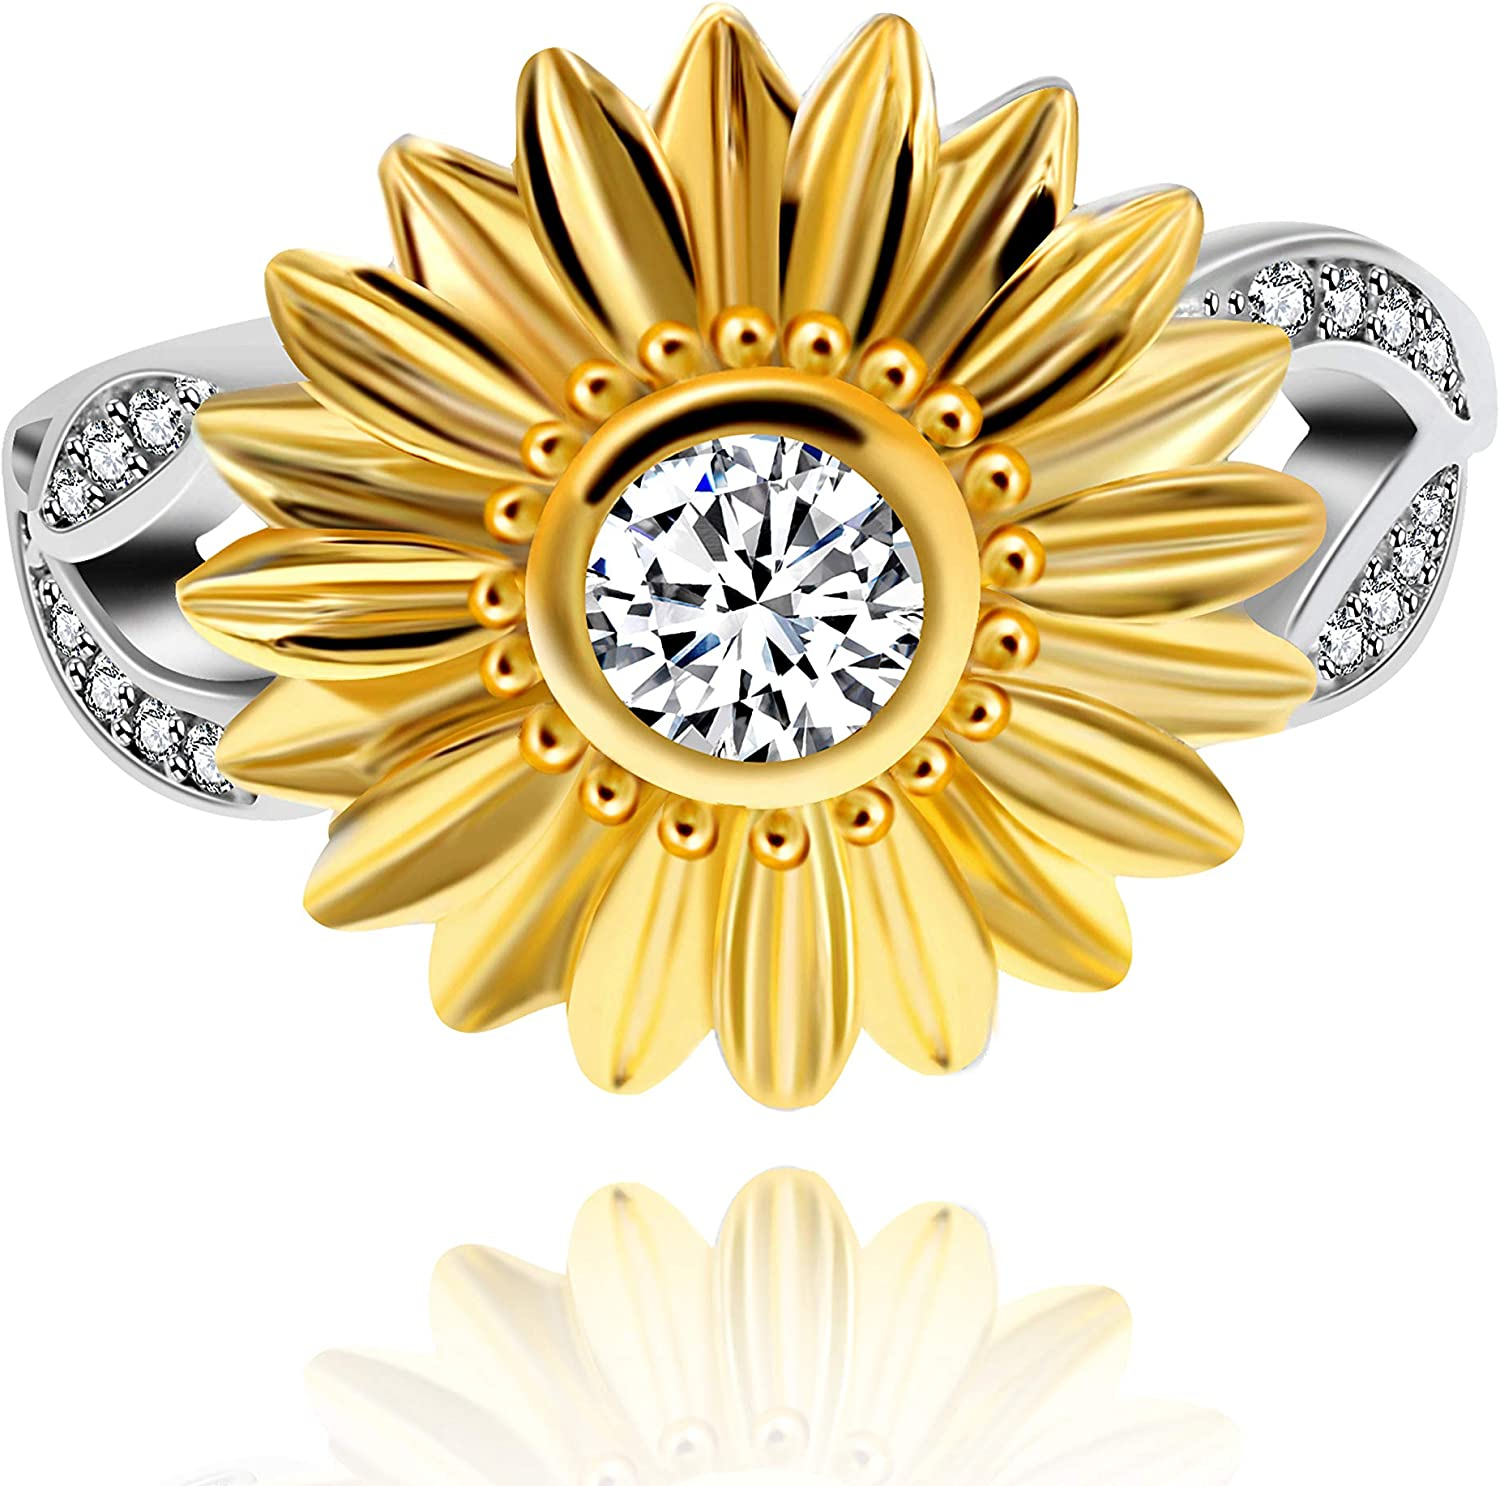 Uloveido S925 Sterling Silver Daisy Ring Two Tones Zircon Sunflower Ring 3D Flower Wedding Party Jewelry for Women Girls Y759